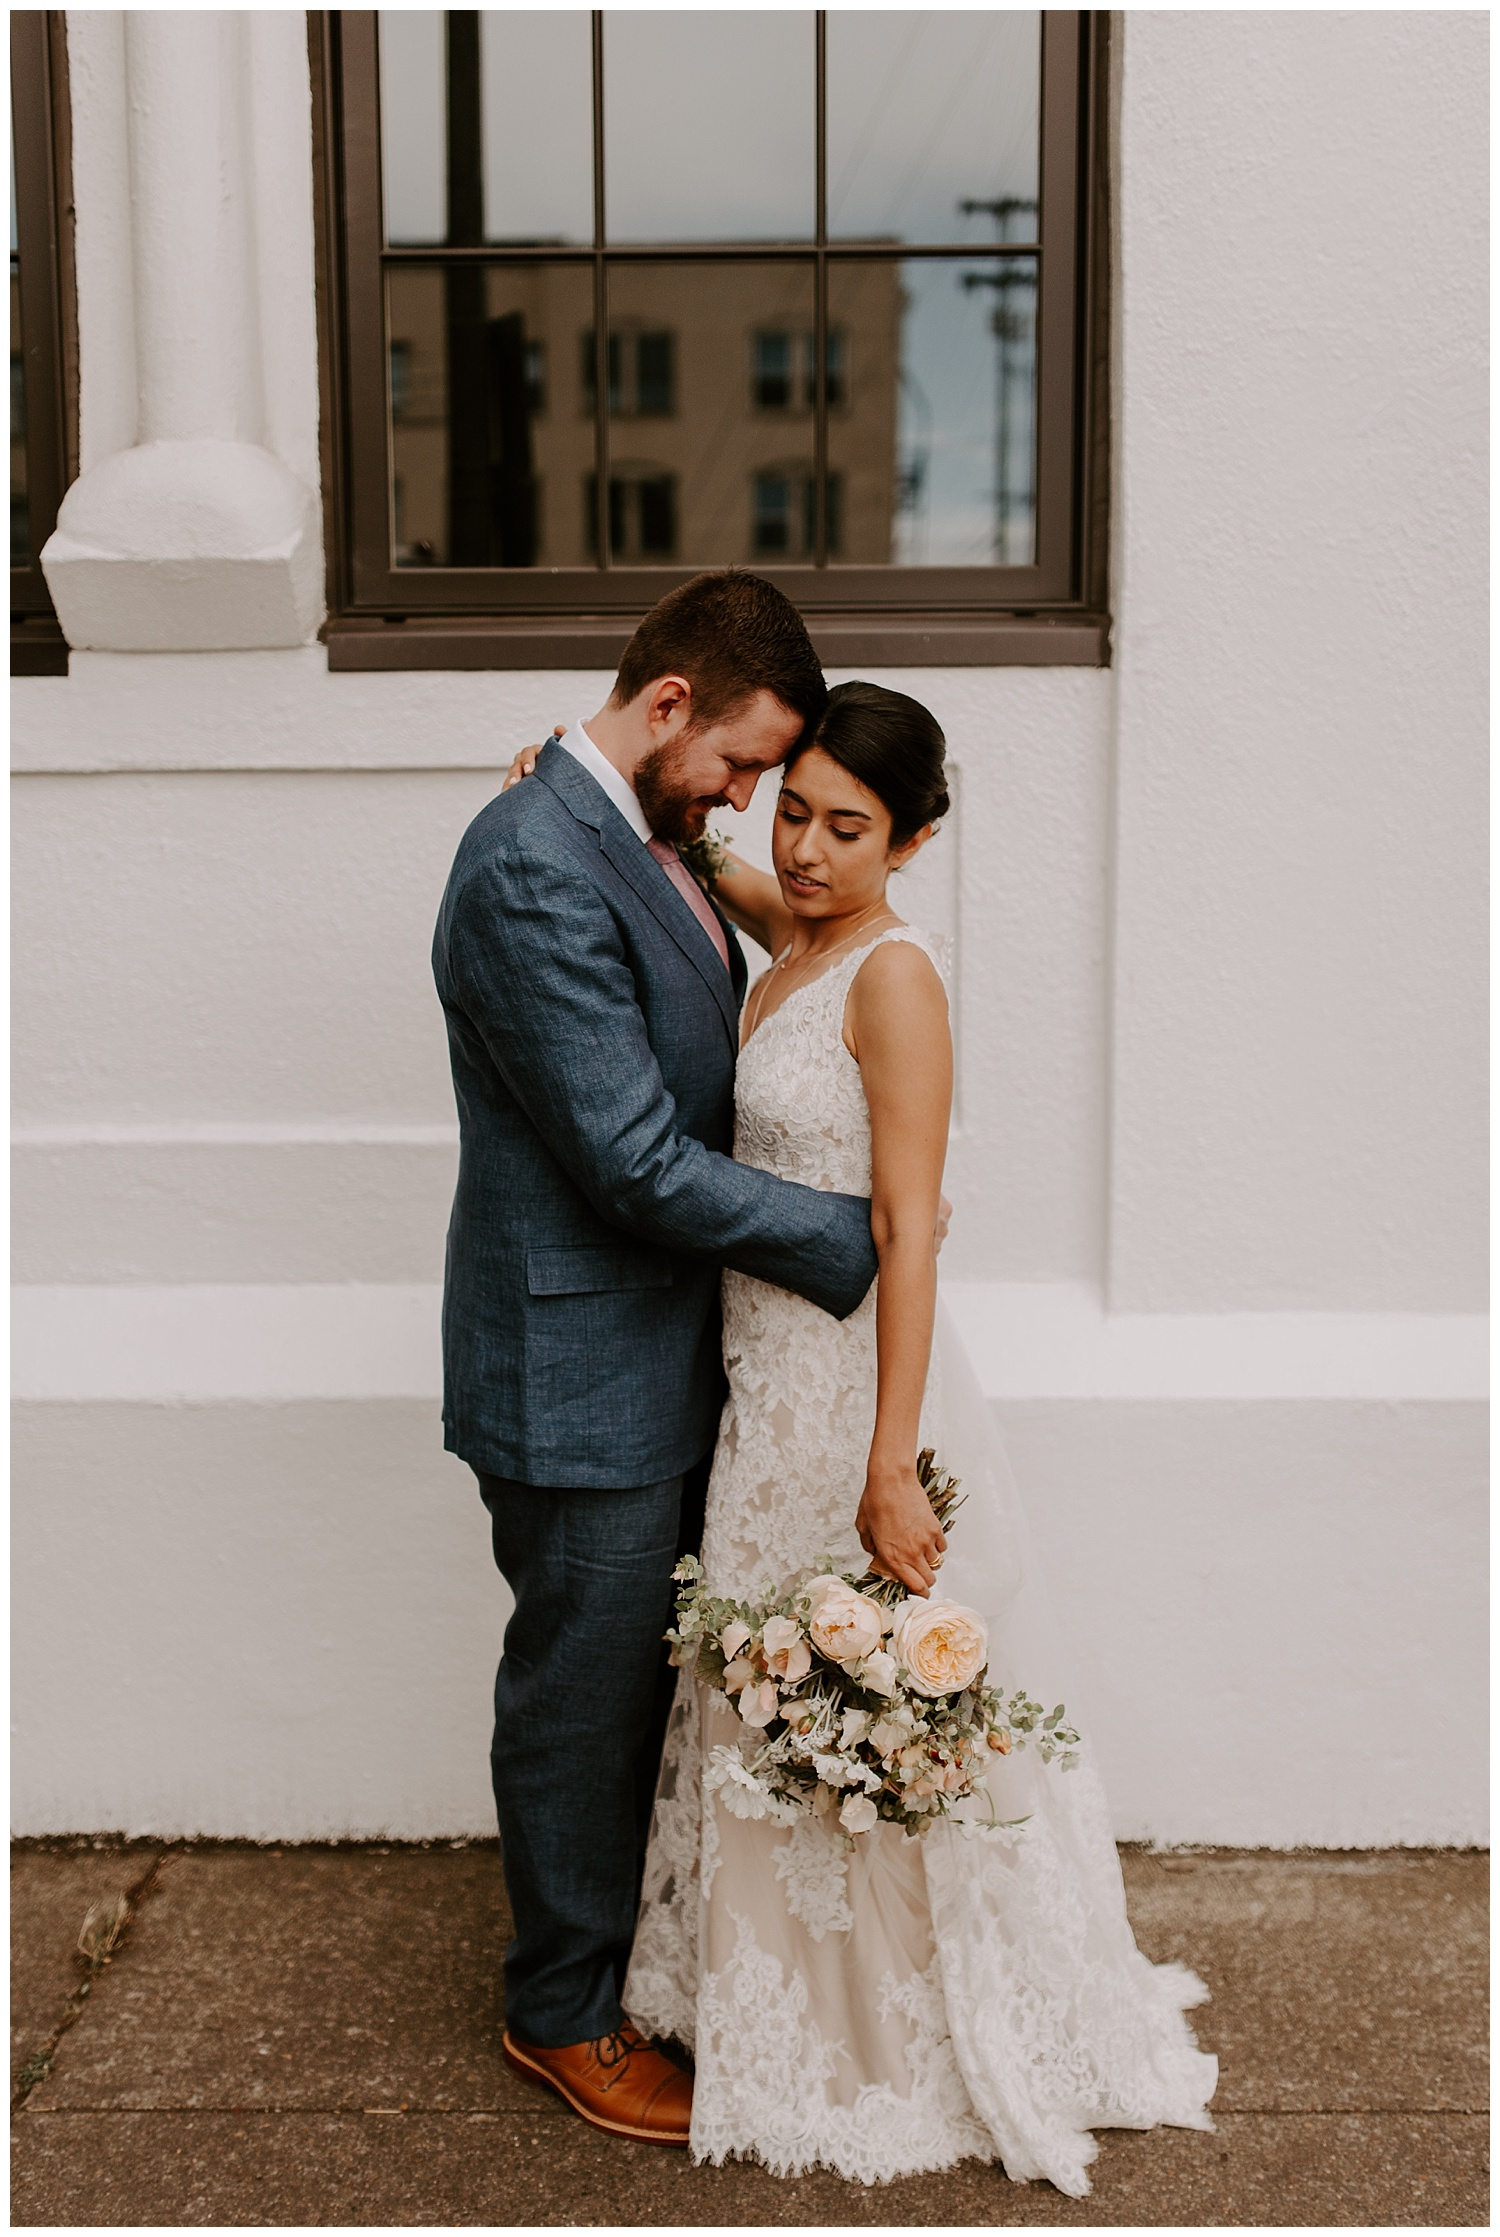 Portland Rooftop Wedding - Eastside Exchange Forest Park Bridals - Jessicaheronimages.com